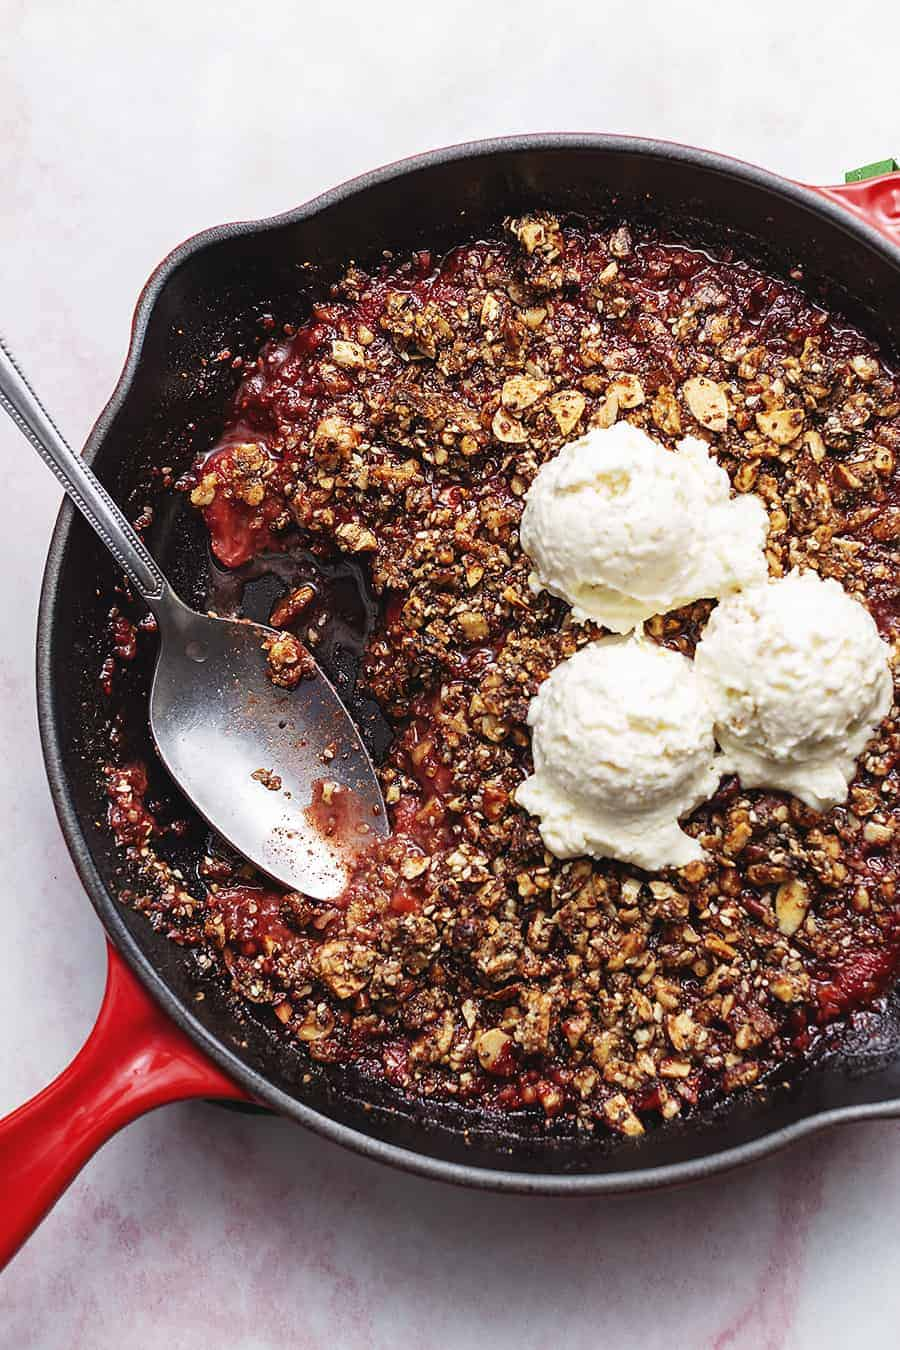 keto strawberry crisp in a skillet with ice cream